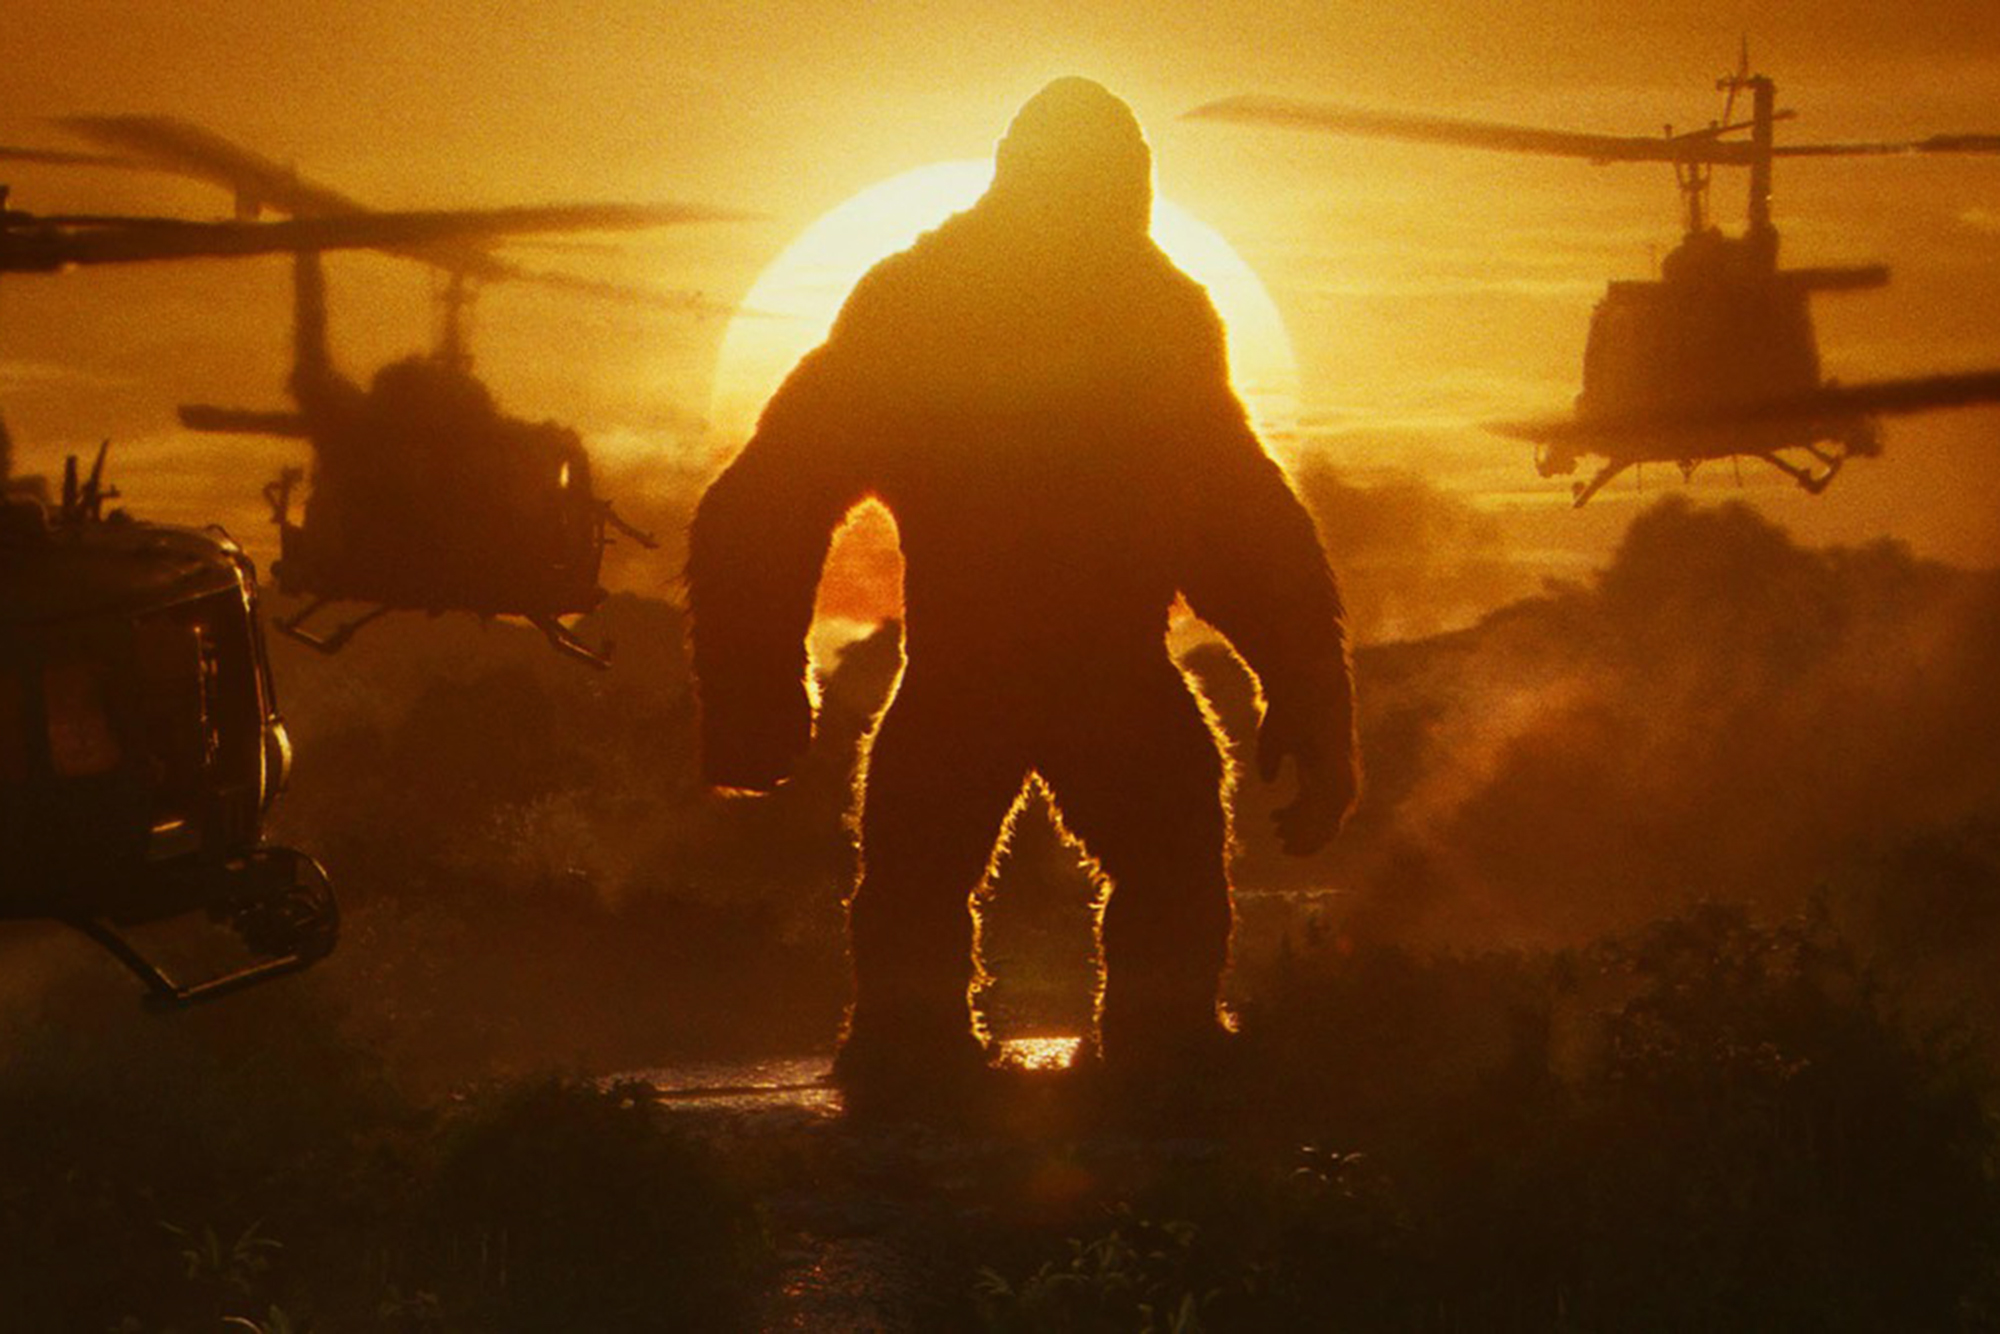 Kong: Skull Island, 2017: The new Kong is a throwback to the 1933 version, visually referencing that movie's classic monster look. Though motion-capture sessions contributed to his visage, the 100-ft. monster came to life through computer animation. The biggest challenge: his fur. Animators spent a year designing his 19 million digital hairs.